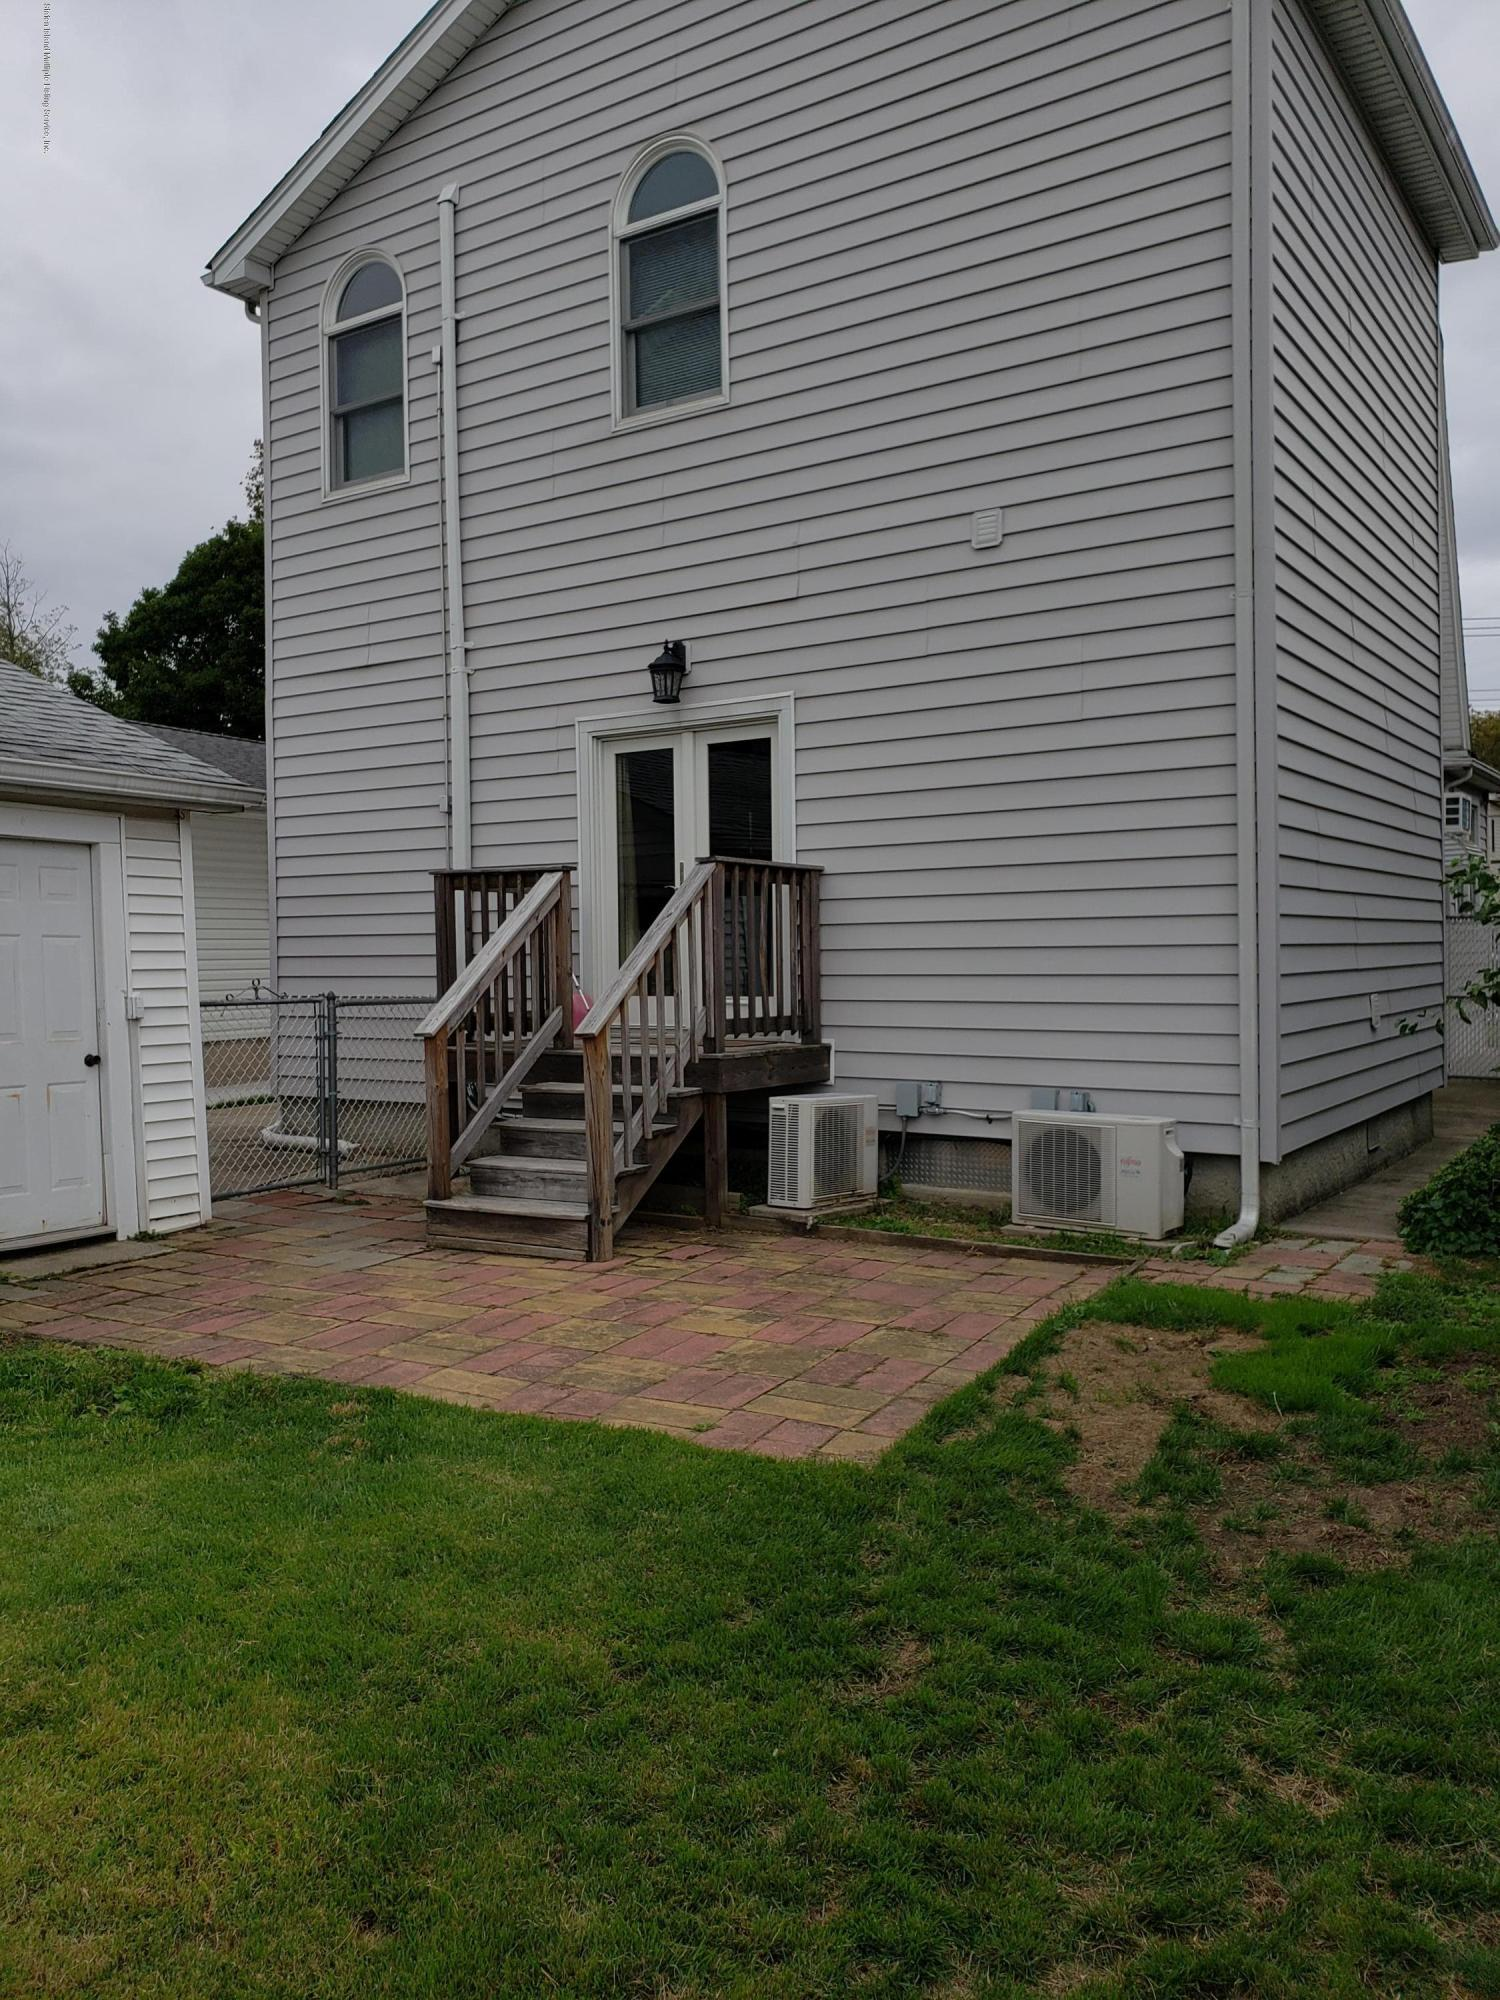 Single Family - Detached 80 Grant Place  Staten Island, NY 10306, MLS-1134591-18